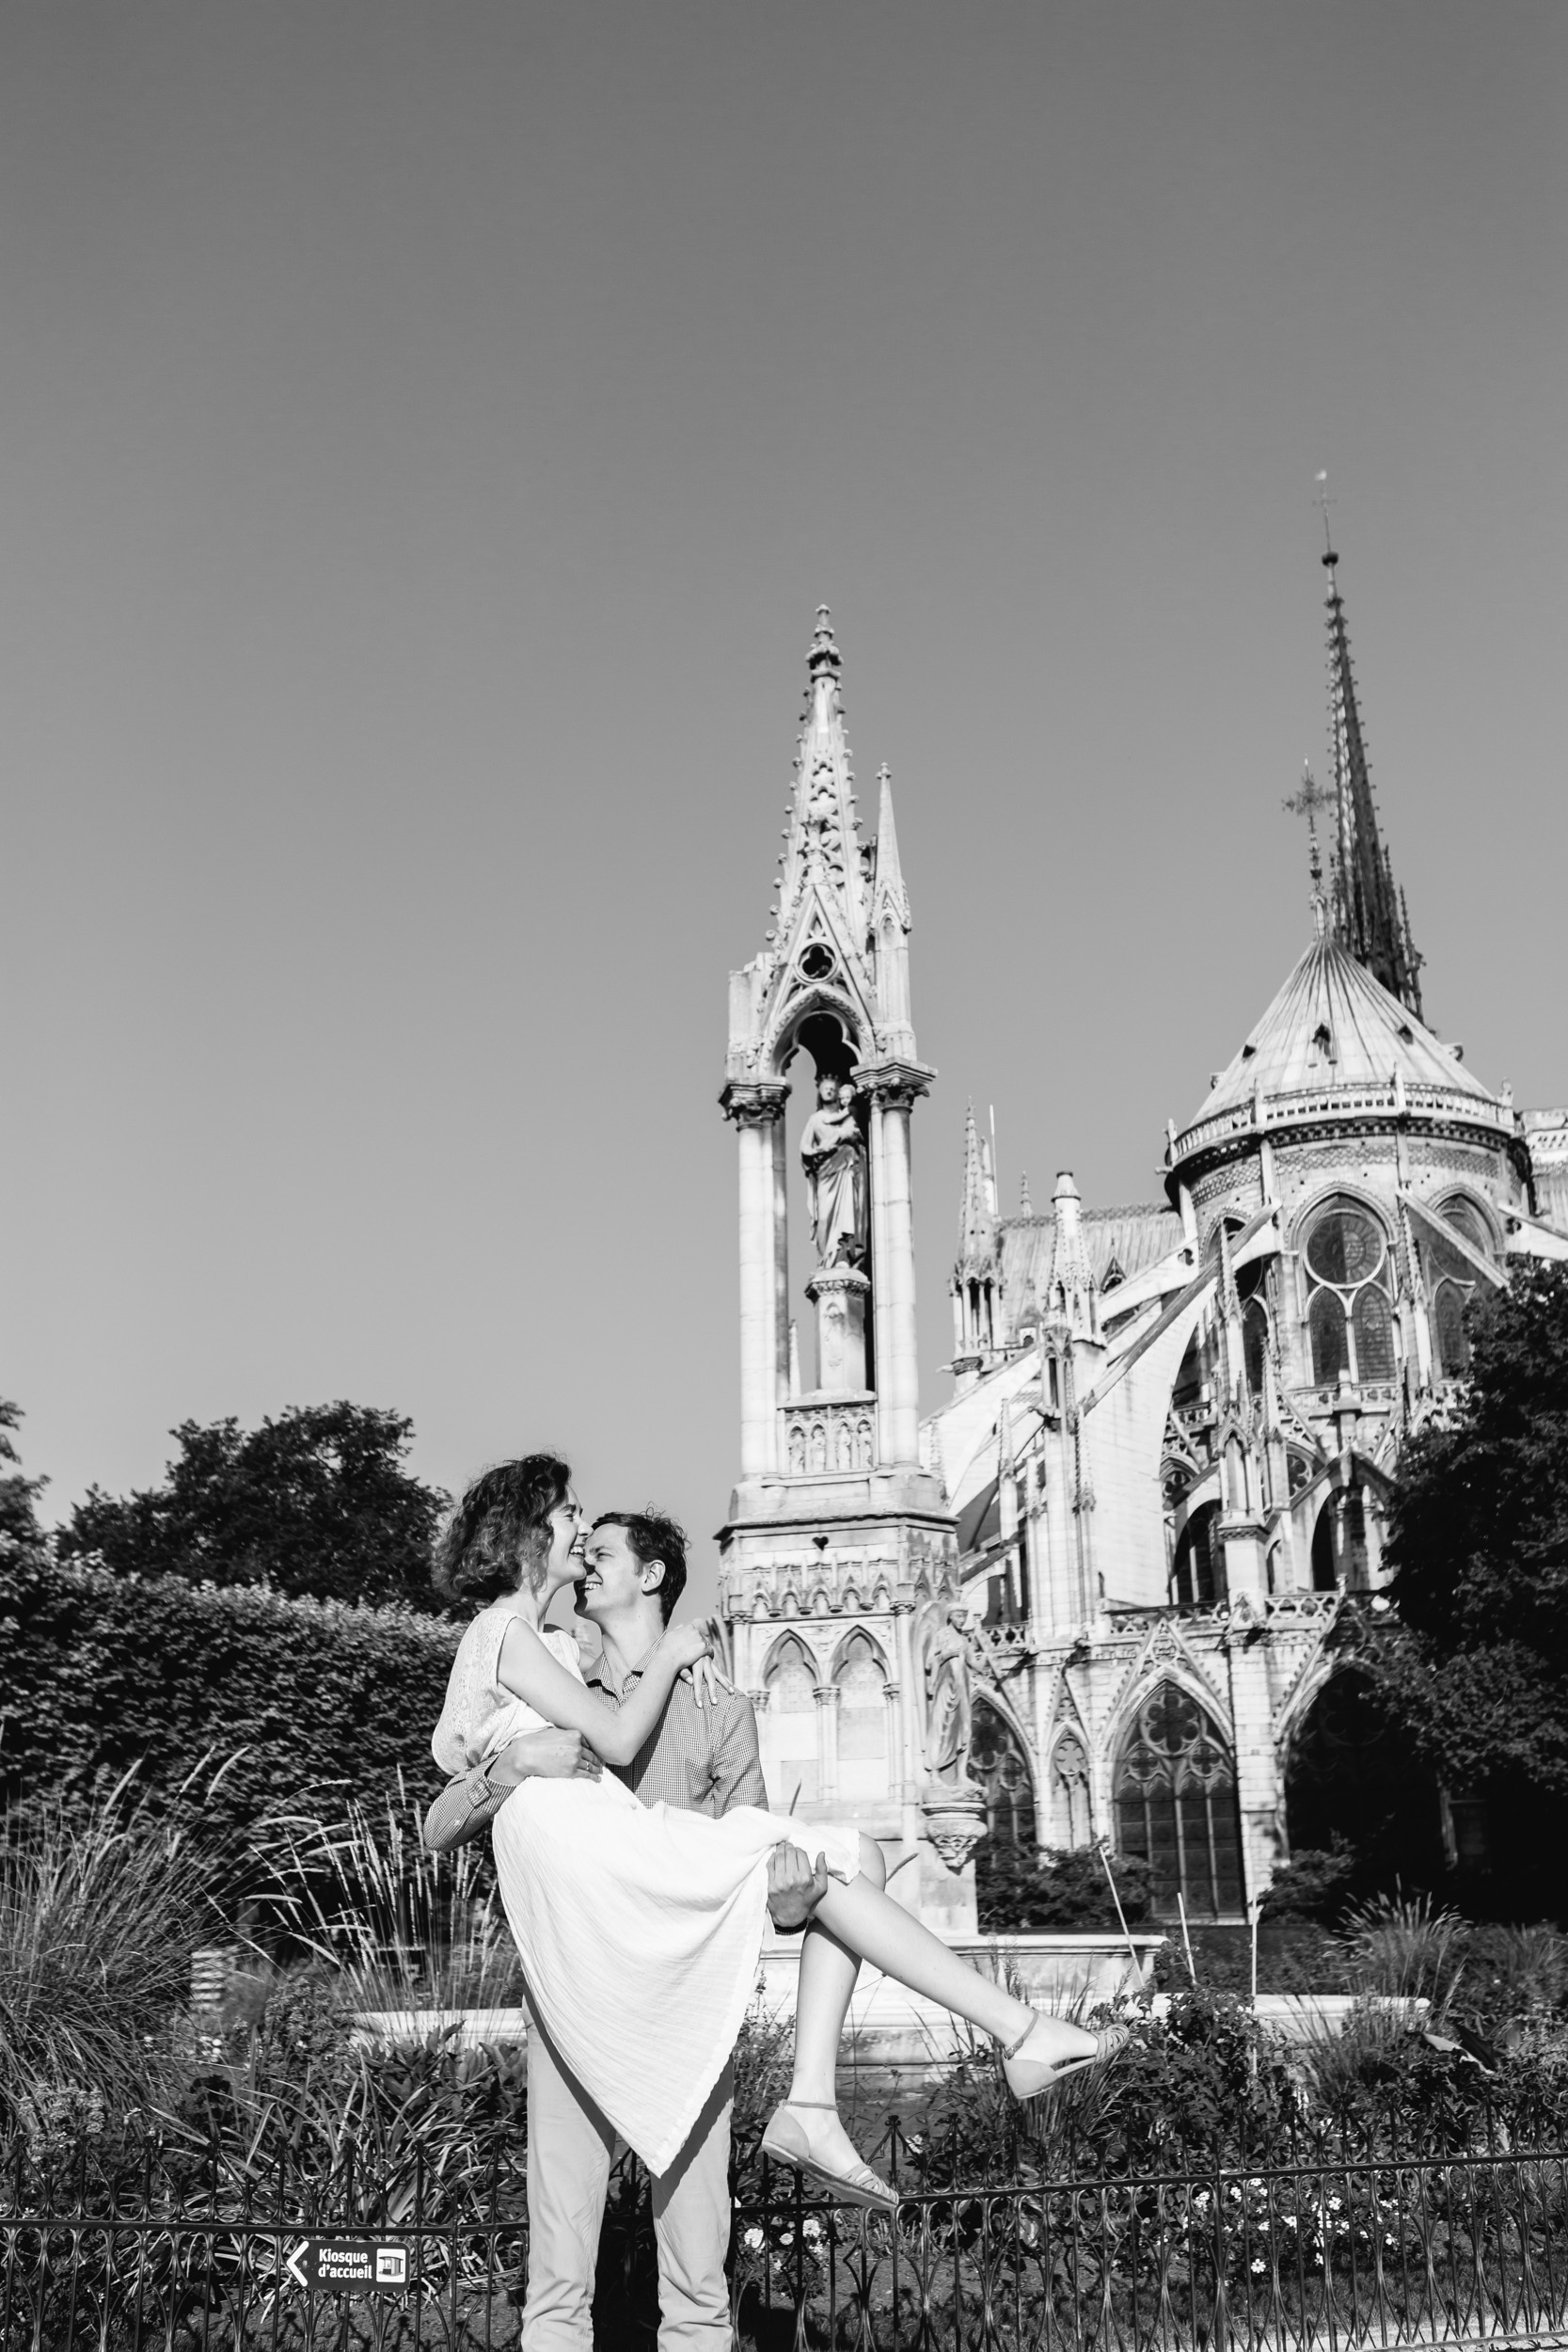 Man holding his wife in his arms by Notre Dame Cathedral garden in Paris - black and white photo captured by Paris Photographer Federico Guendel IheartParisFr